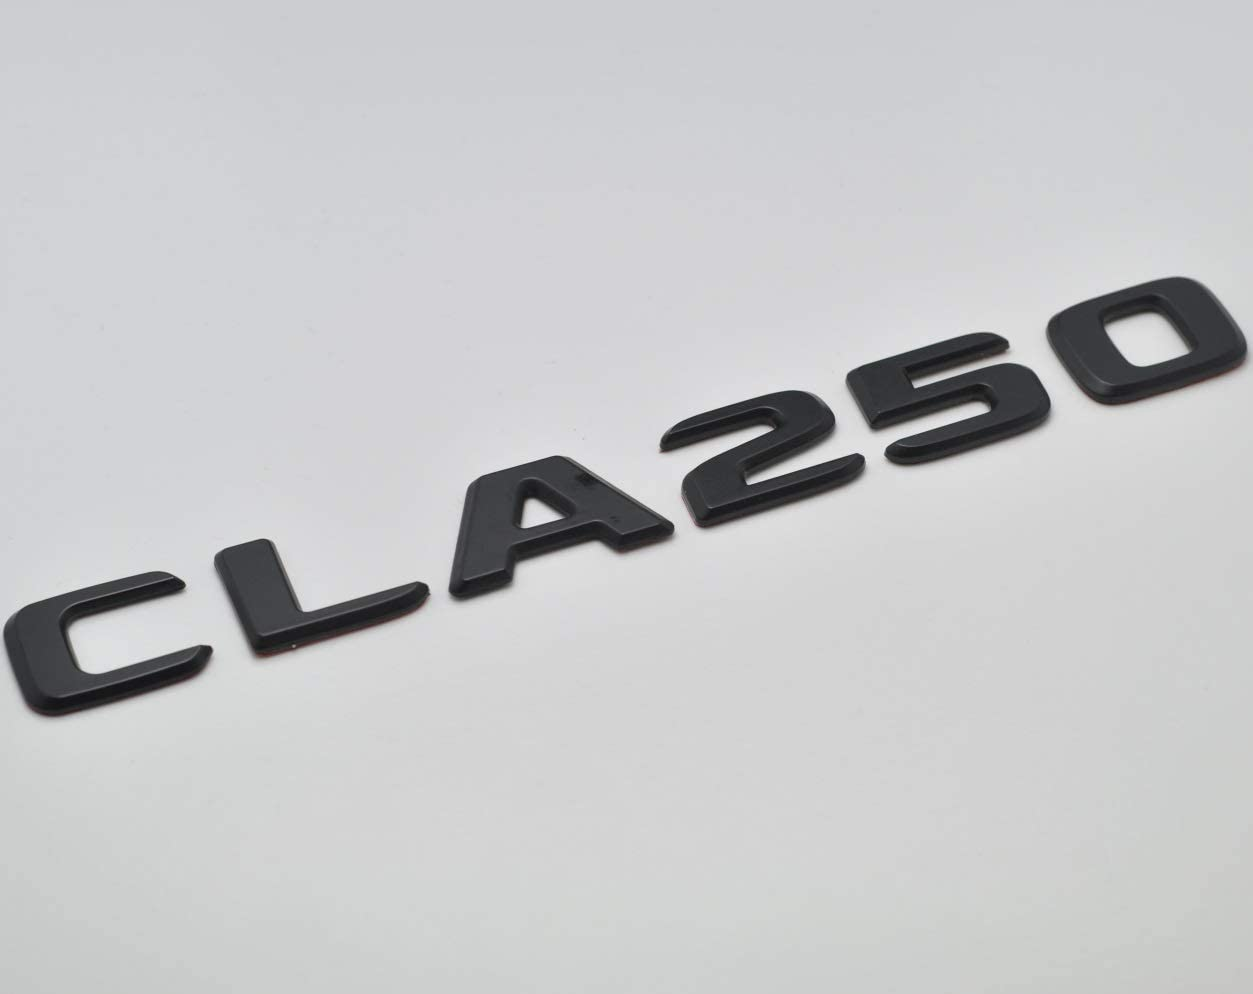 C117 Models C118 AMG Matt Black CLA 250 Flat Lettering Rear Boot Lid Trunk Badge Emblem For Benz CLA Edition Class